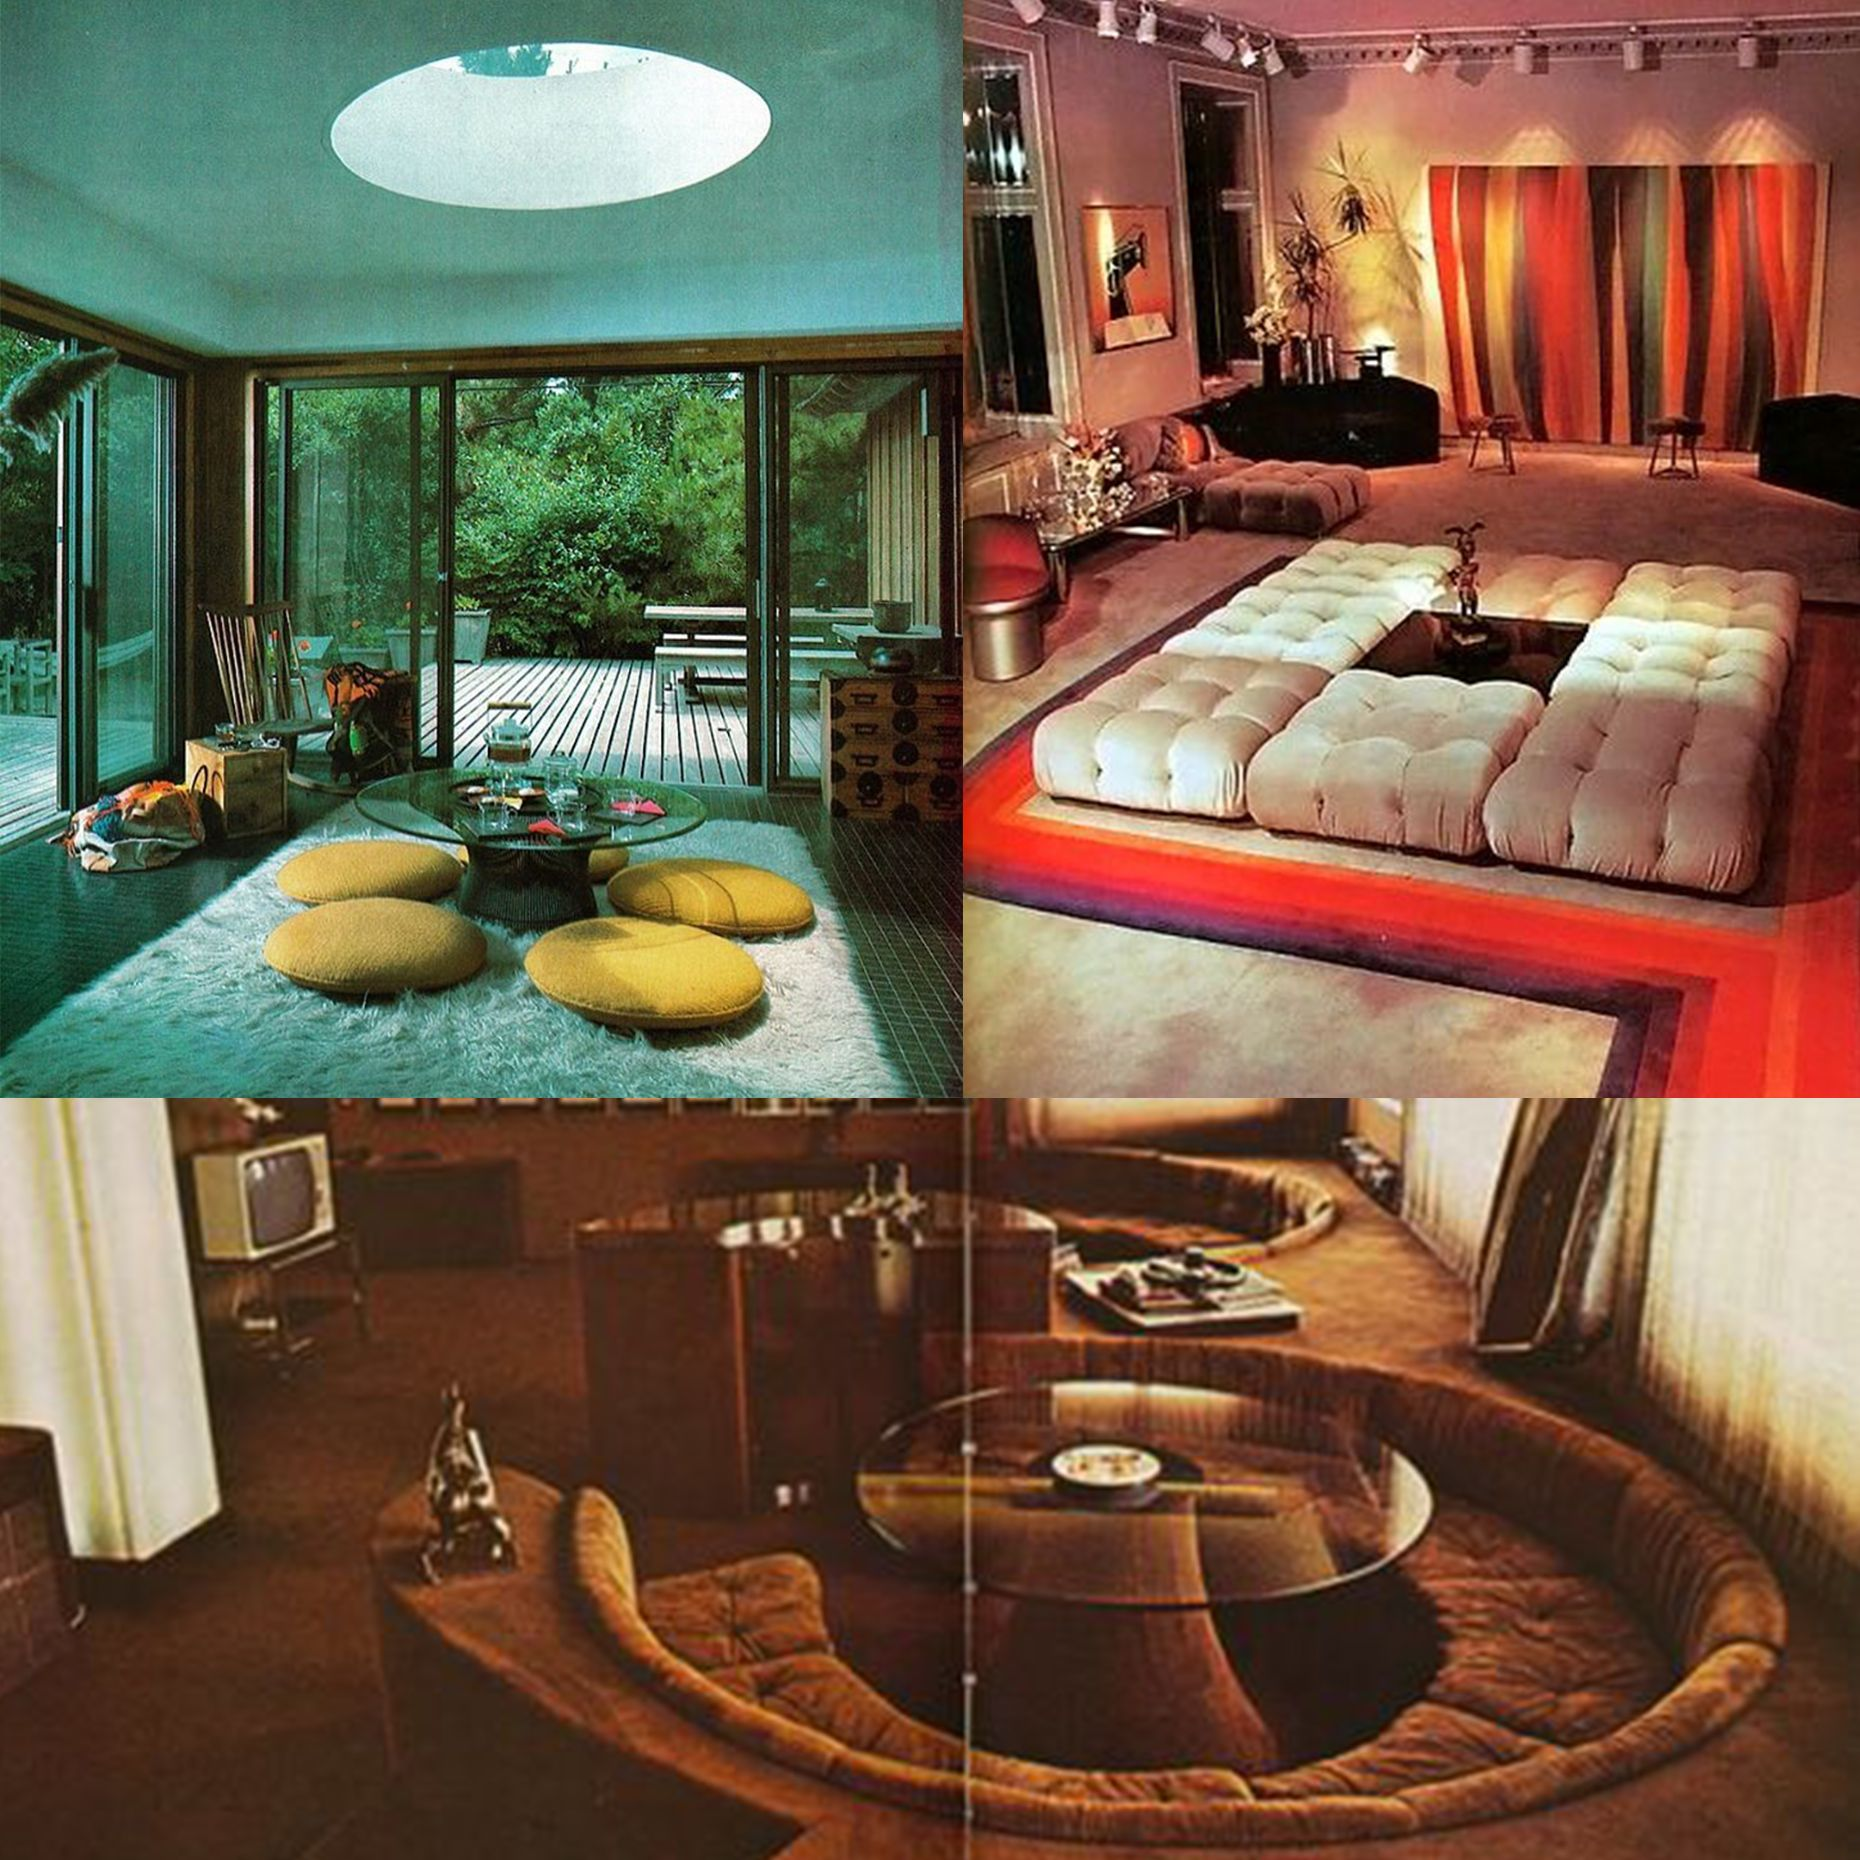 70s Interior Design: How to Keep the Seventies Alive in your Modern ...